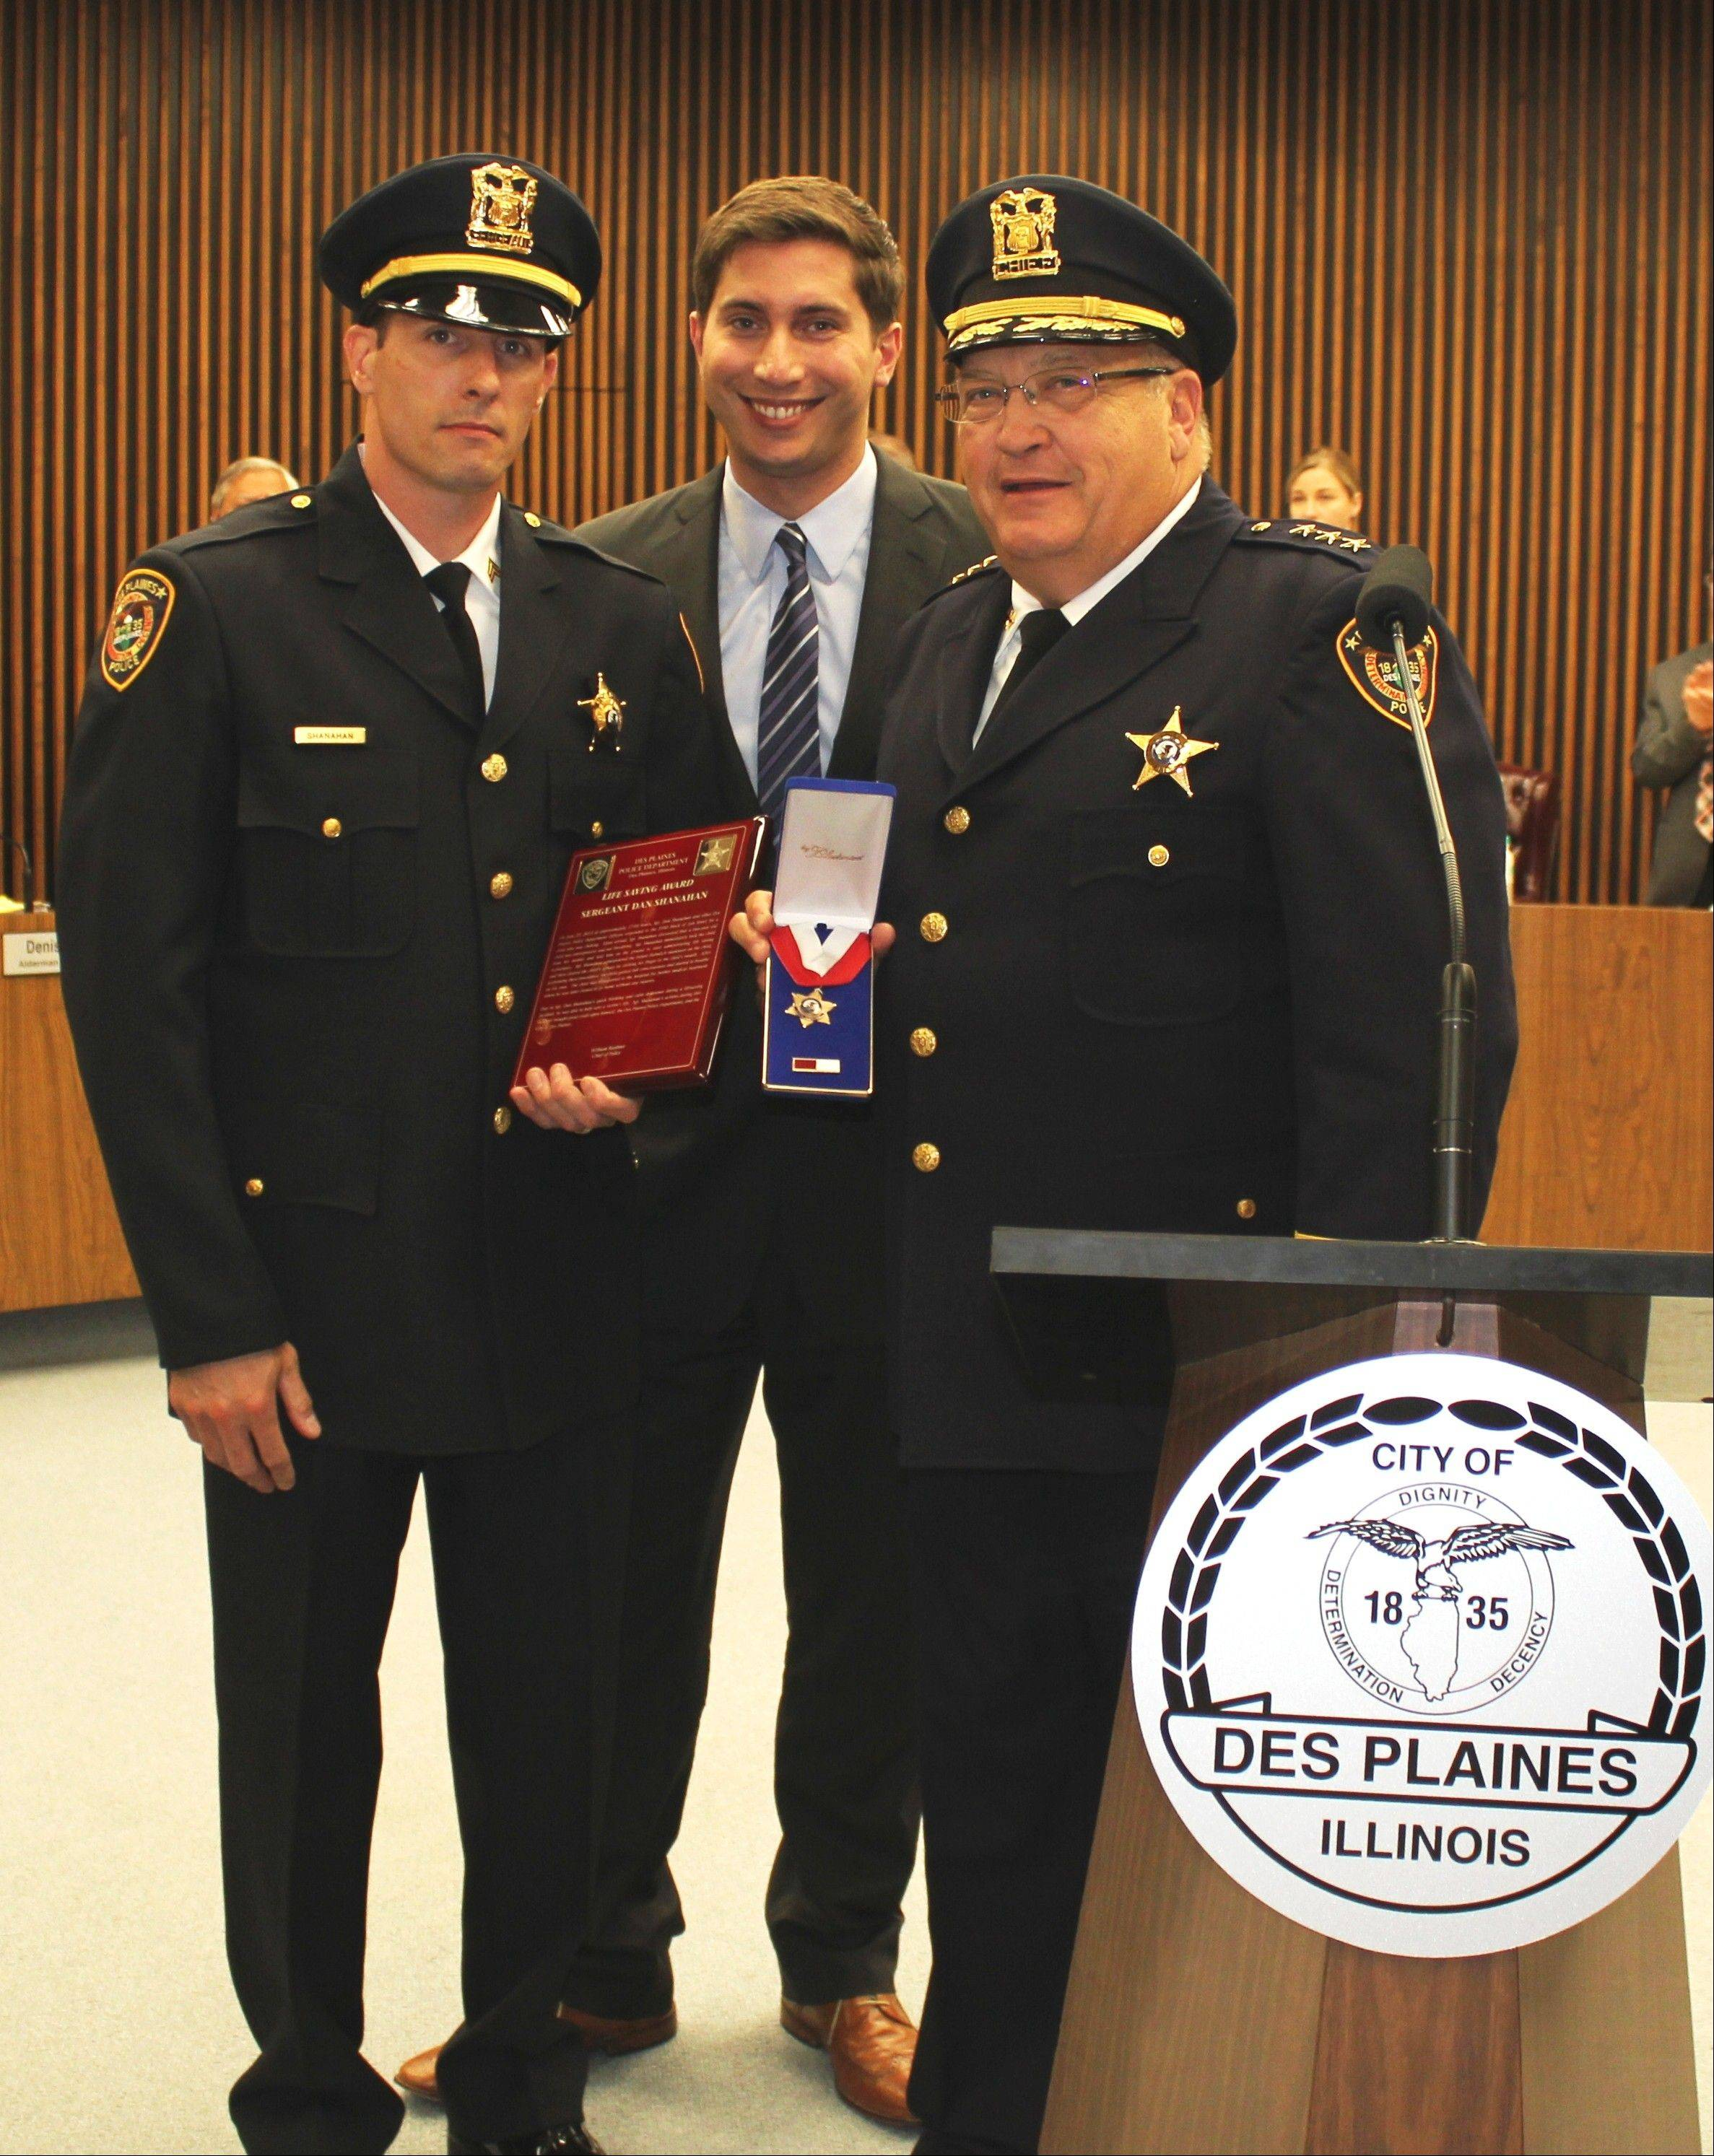 From left, Des Plaines Police Sgt. Dan Shanahan, Mayor Matt Bogusz, and Police Chief William Kushner pose for a photograph after Shanahan was presented with the Life Saving Award at the Aug. 5 city council meeting.